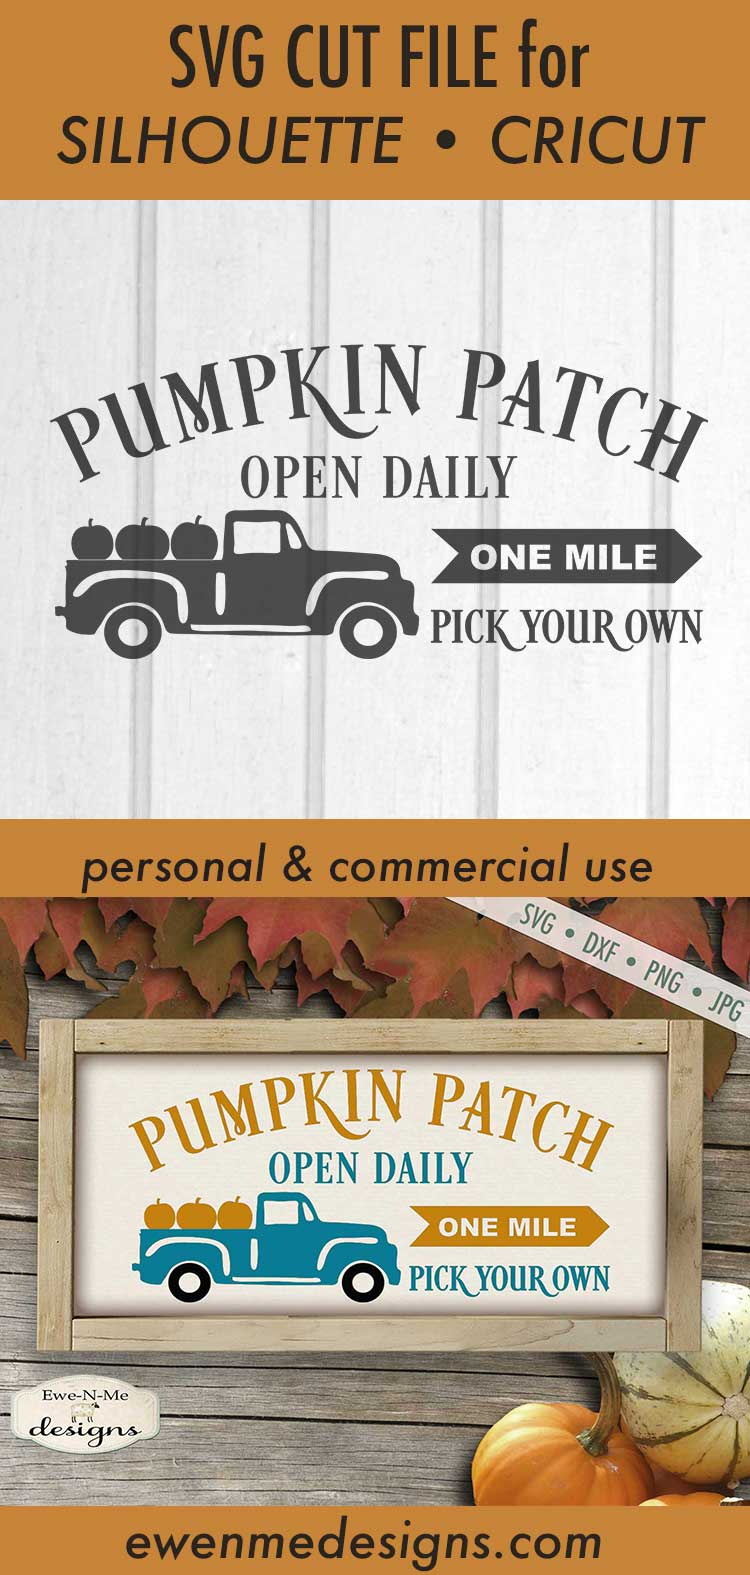 Pumpkin Patch - Truck - Fall - Autumn - SVG DXF example image 3